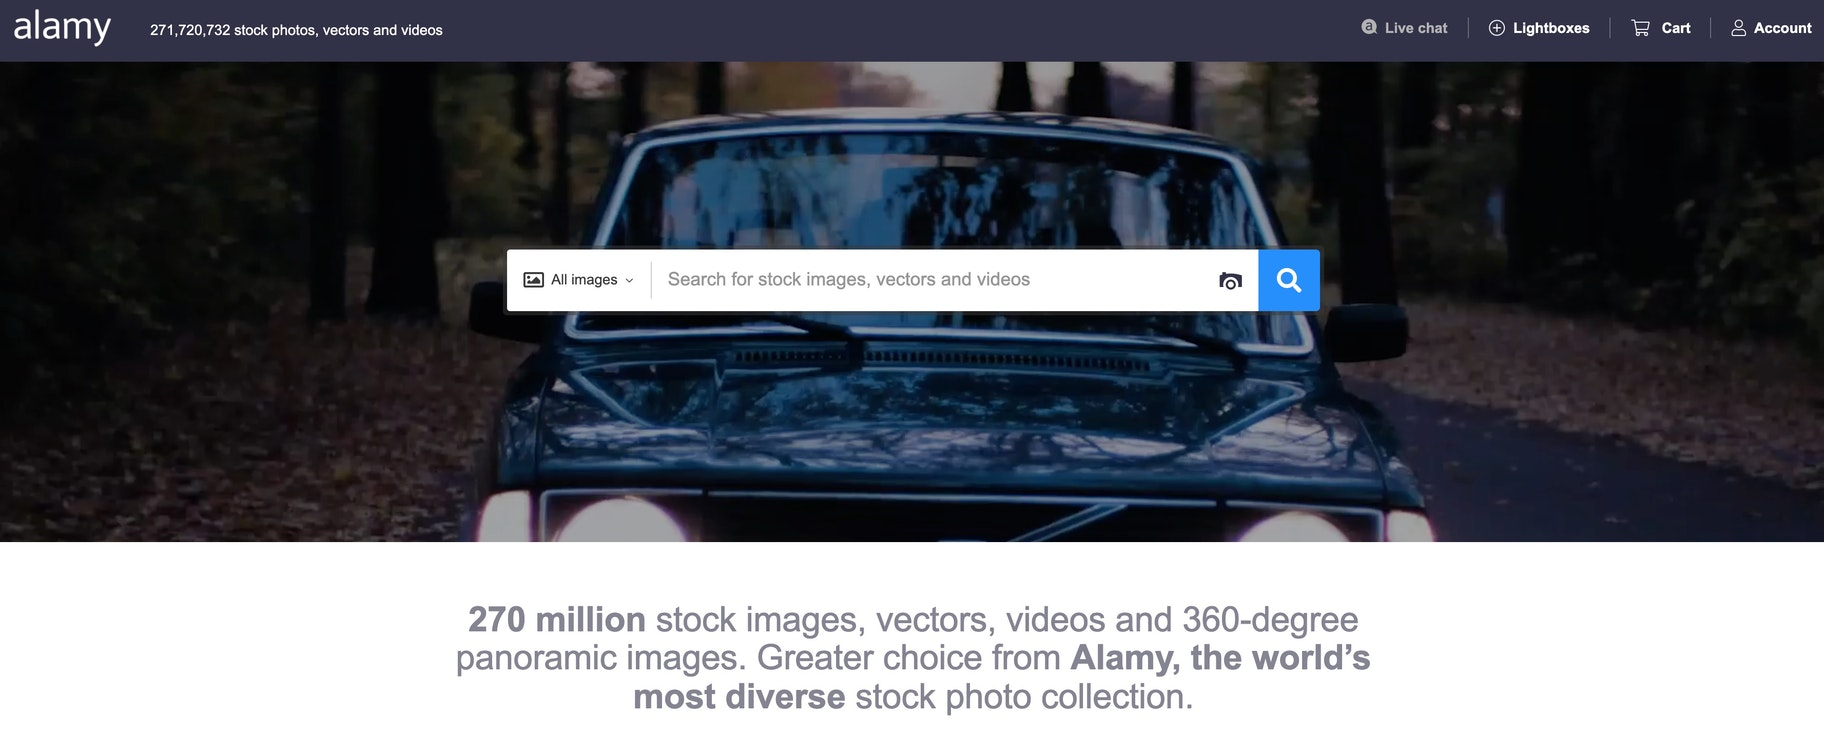 How to sell photos online: sell on Alamy